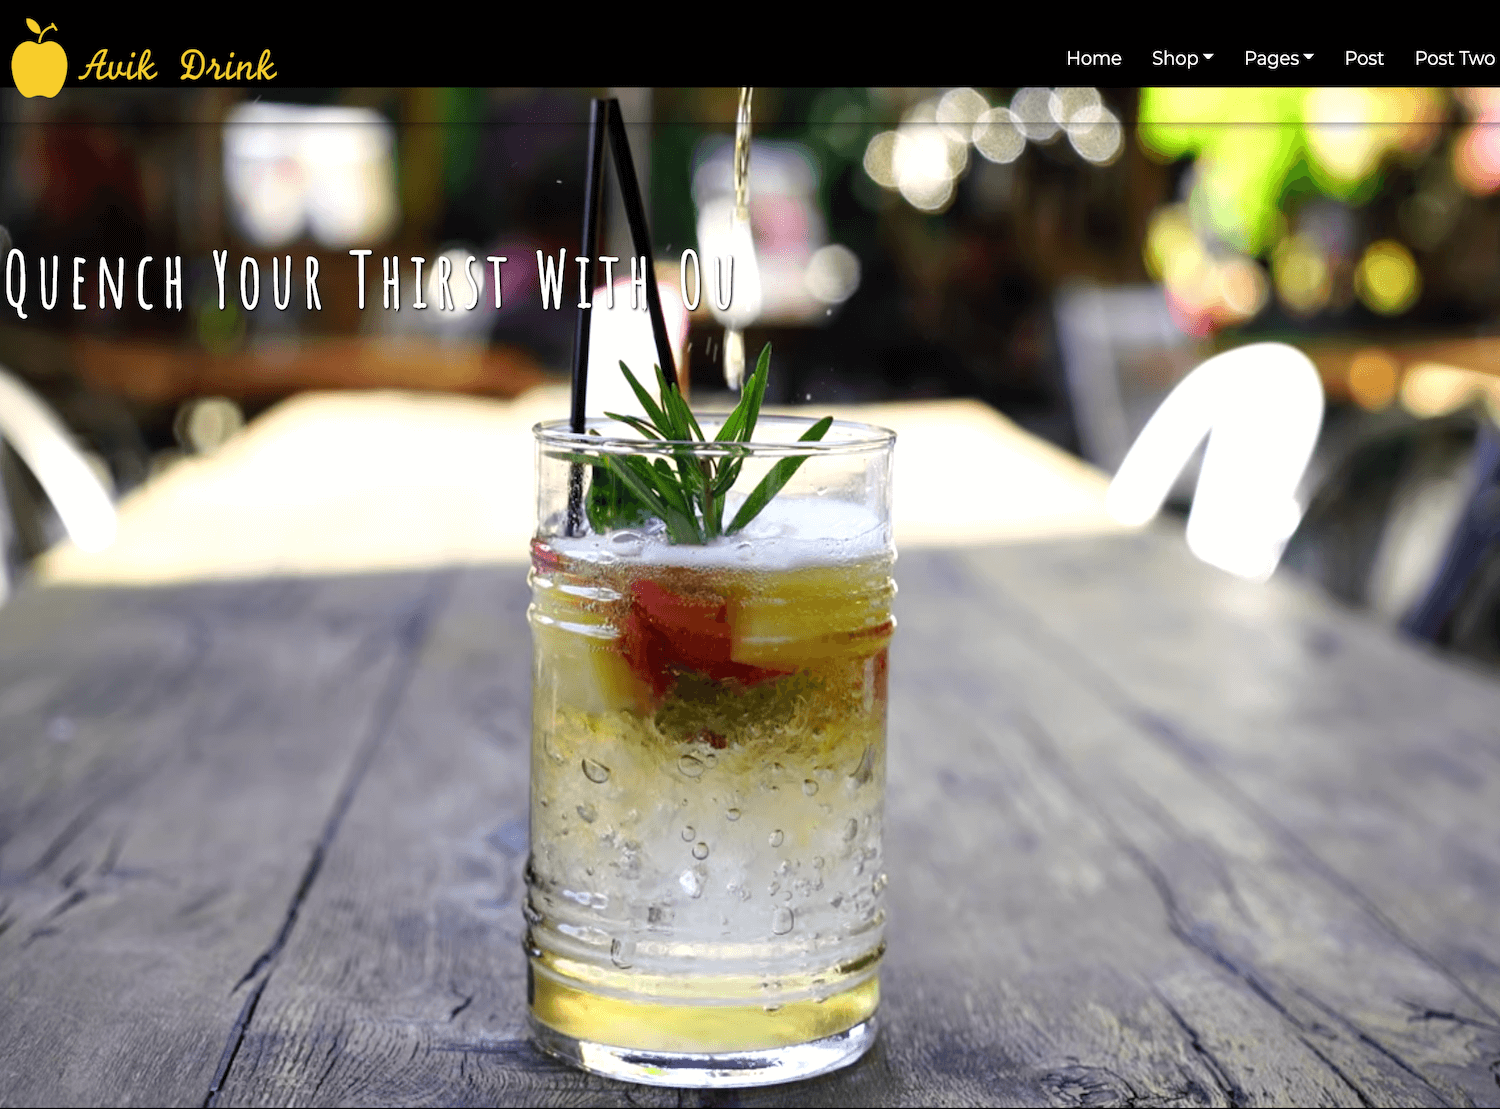 wordpress-theme-avik-drink